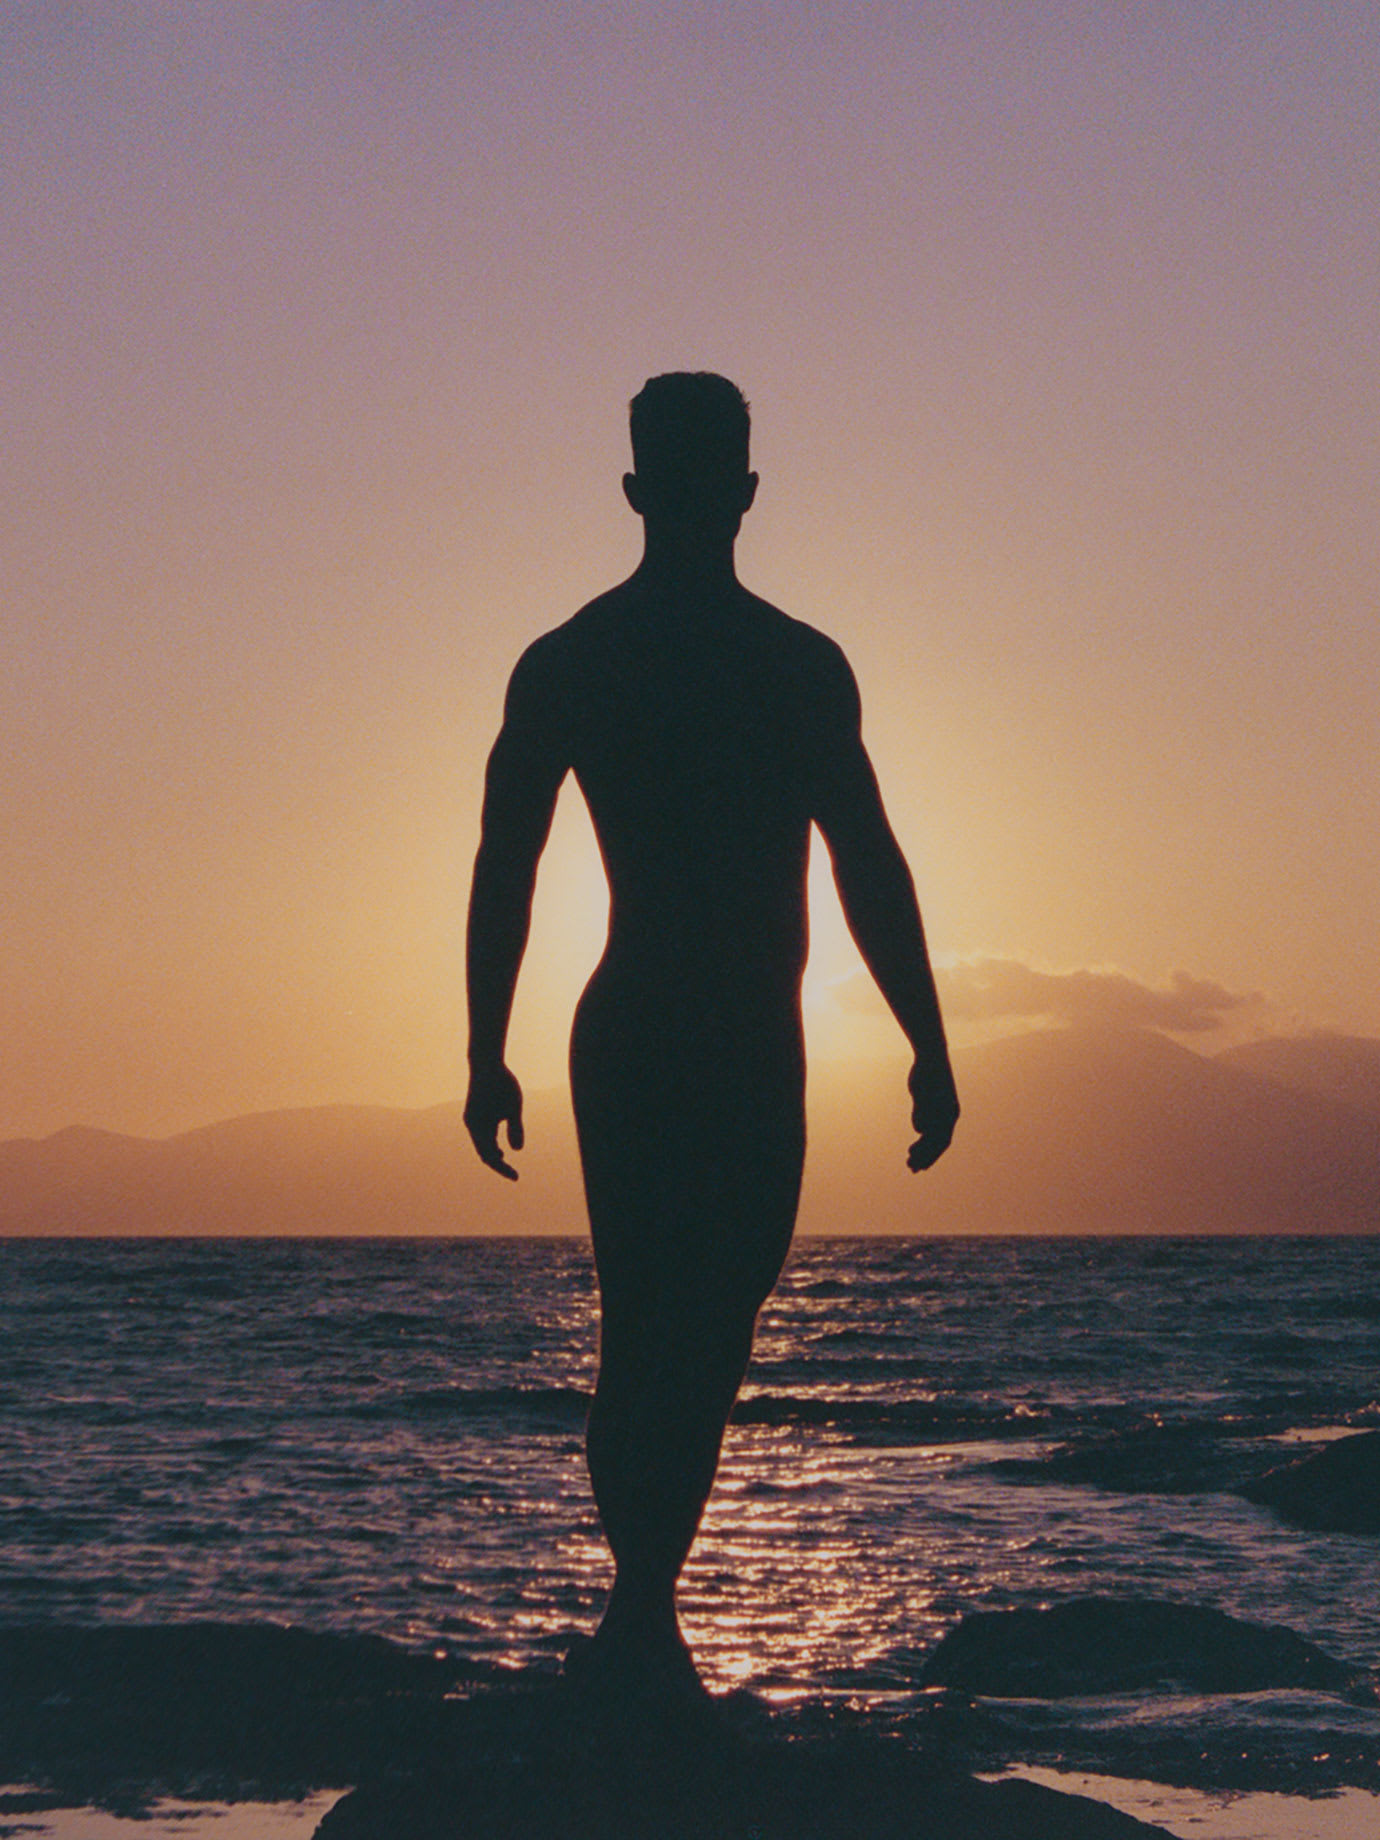 A man in silhouette by the sea.